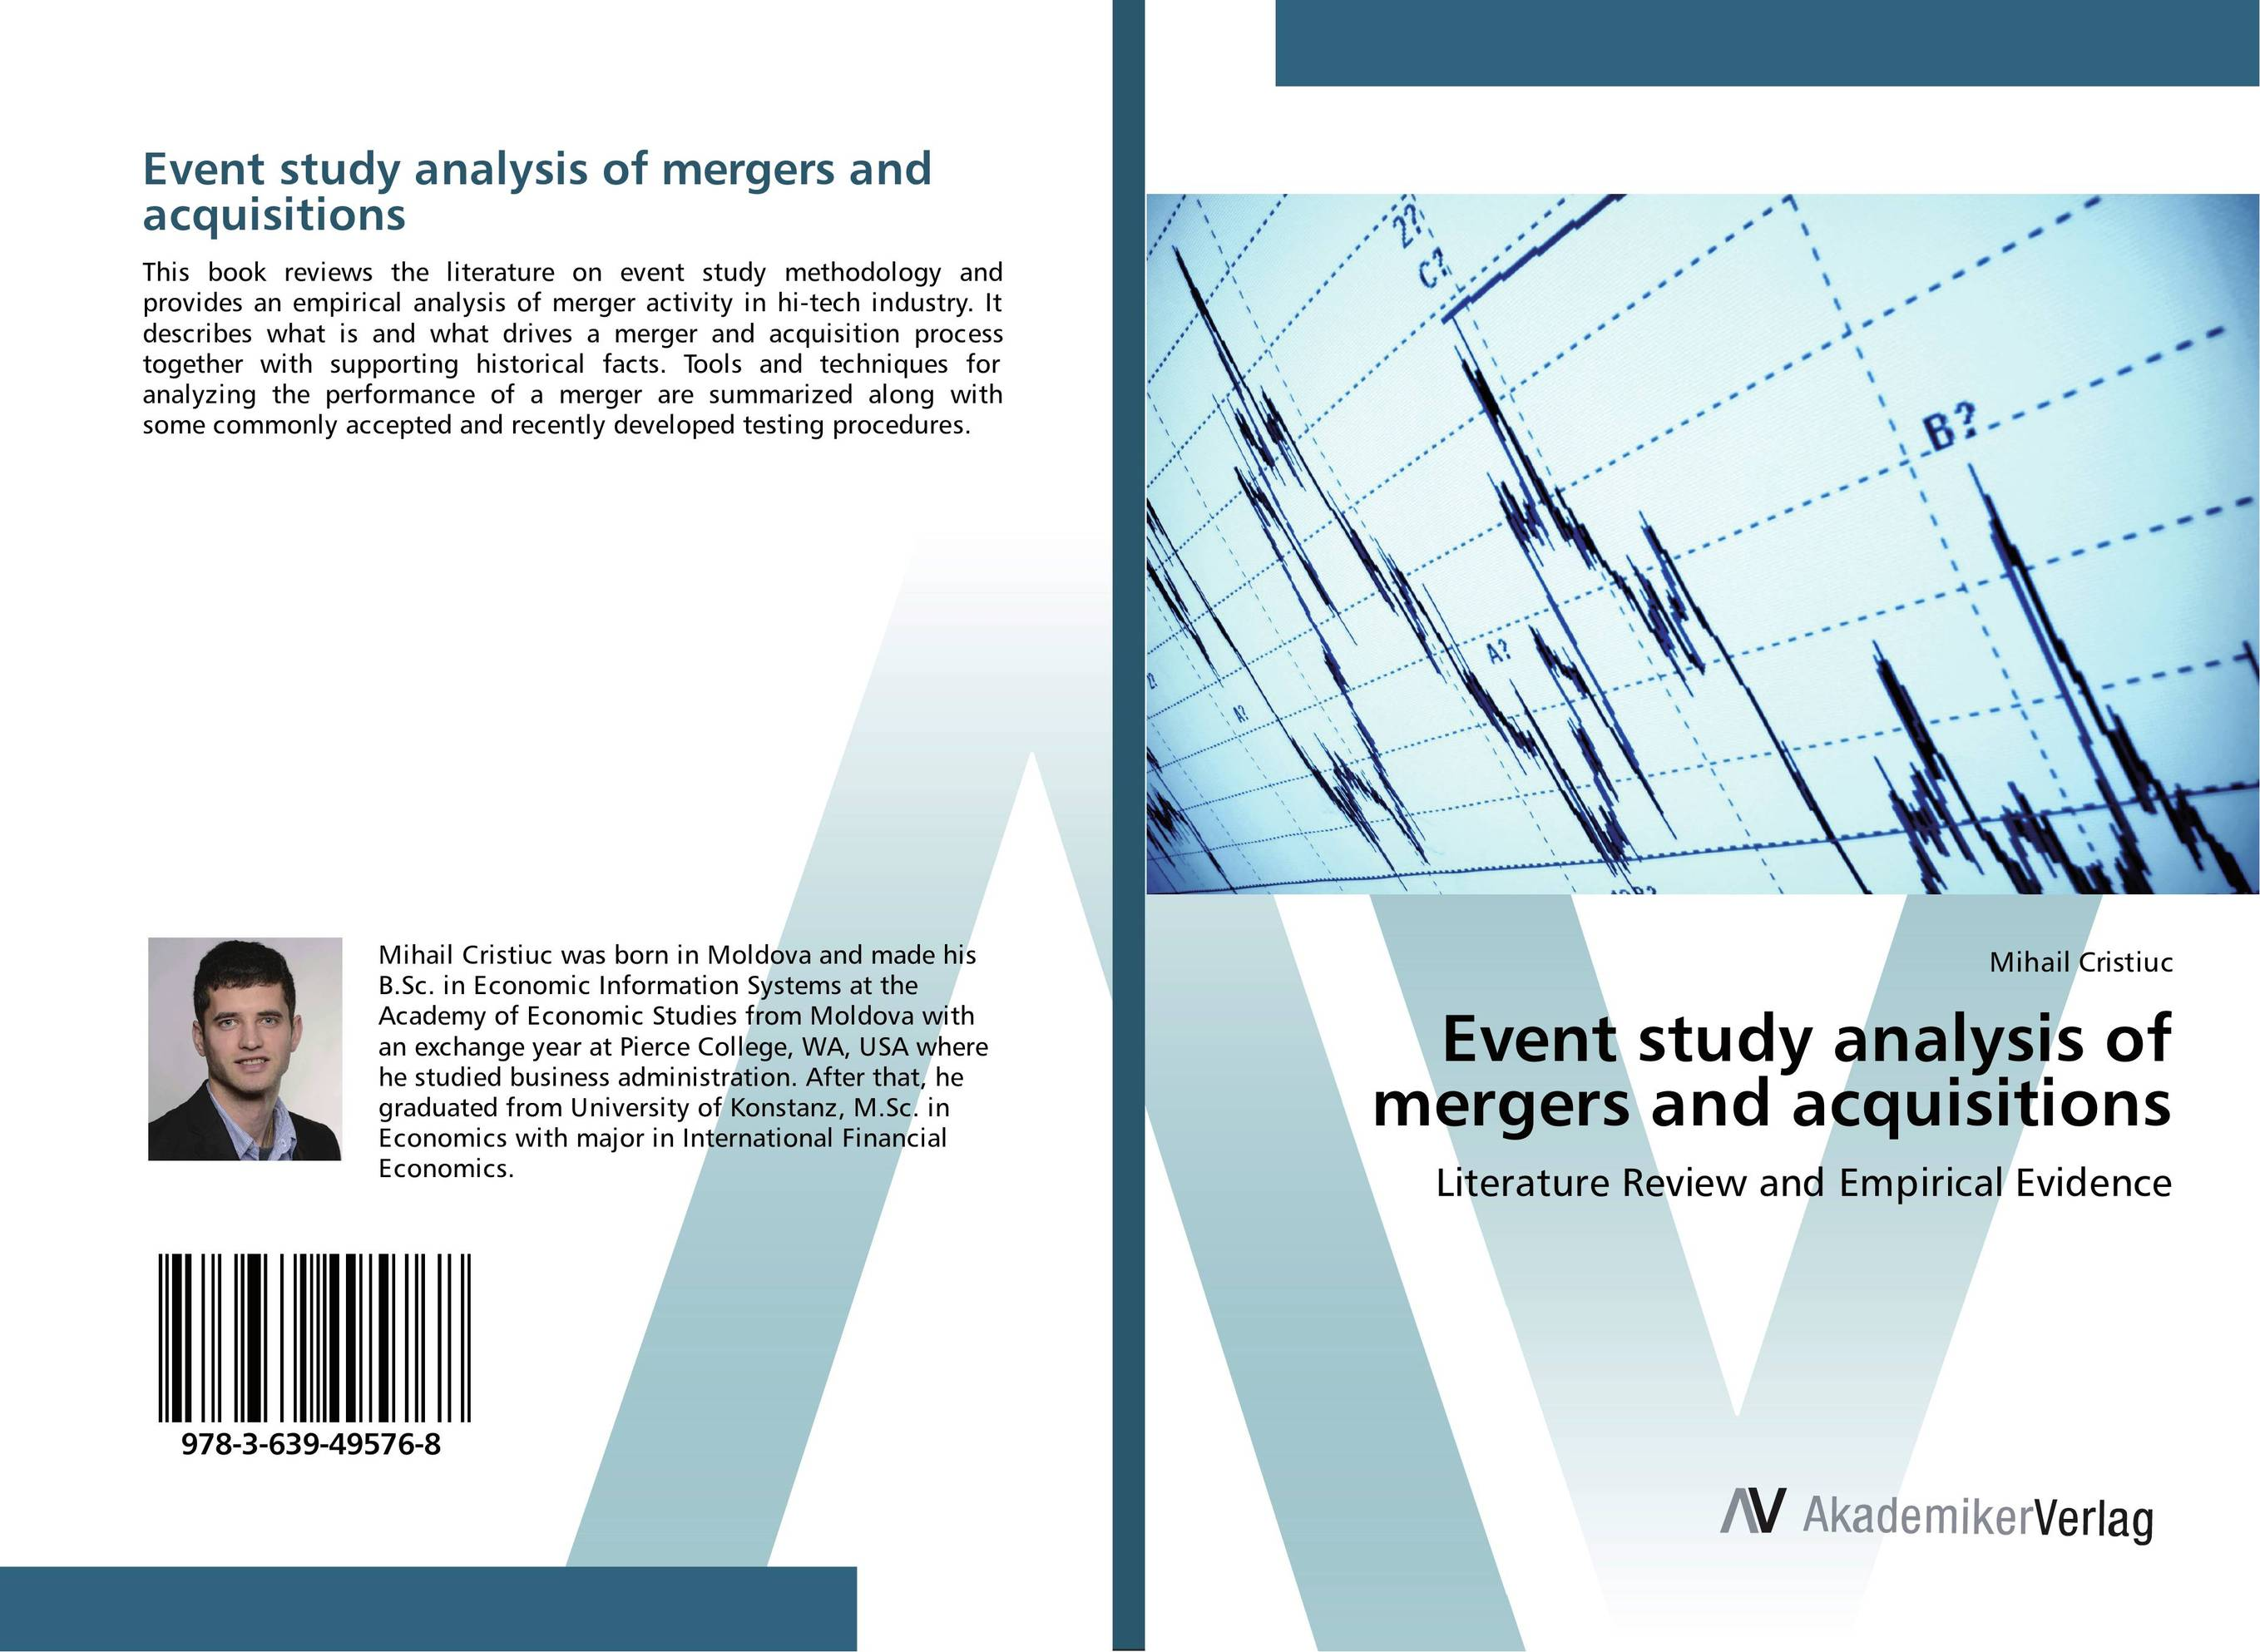 Event study analysis of mergers and acquisitions